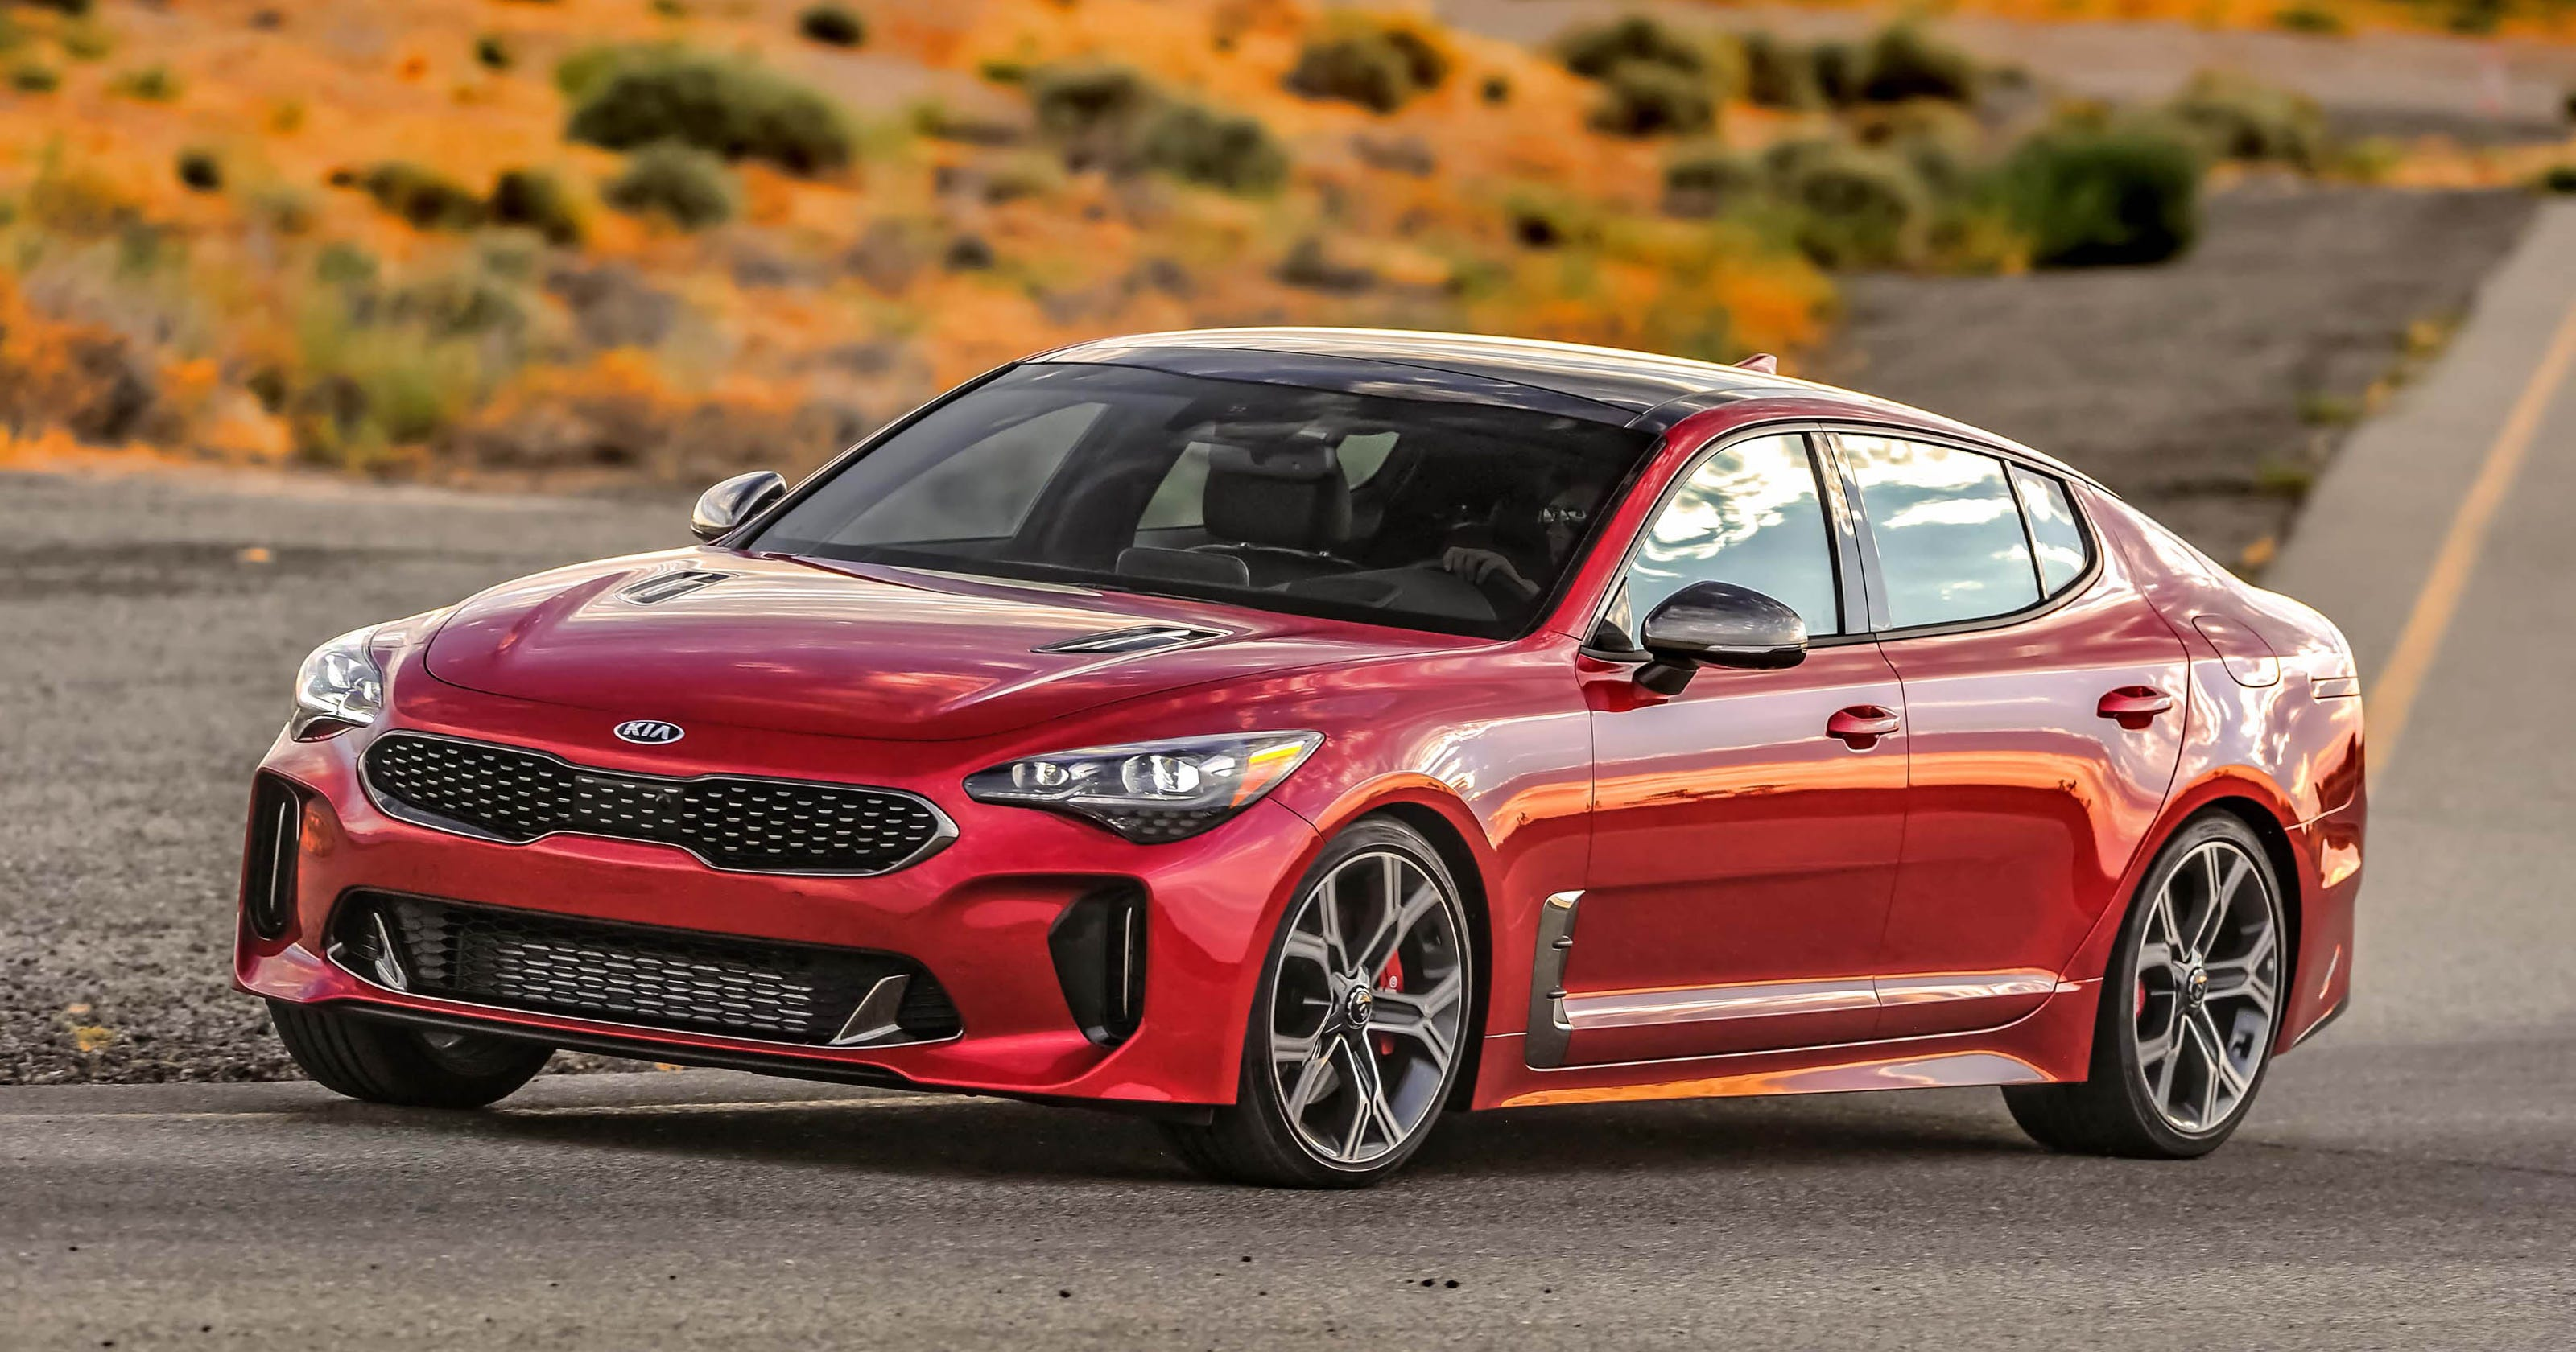 First Drive: 2018 Kia Stinger Takes The Kia Brand To A